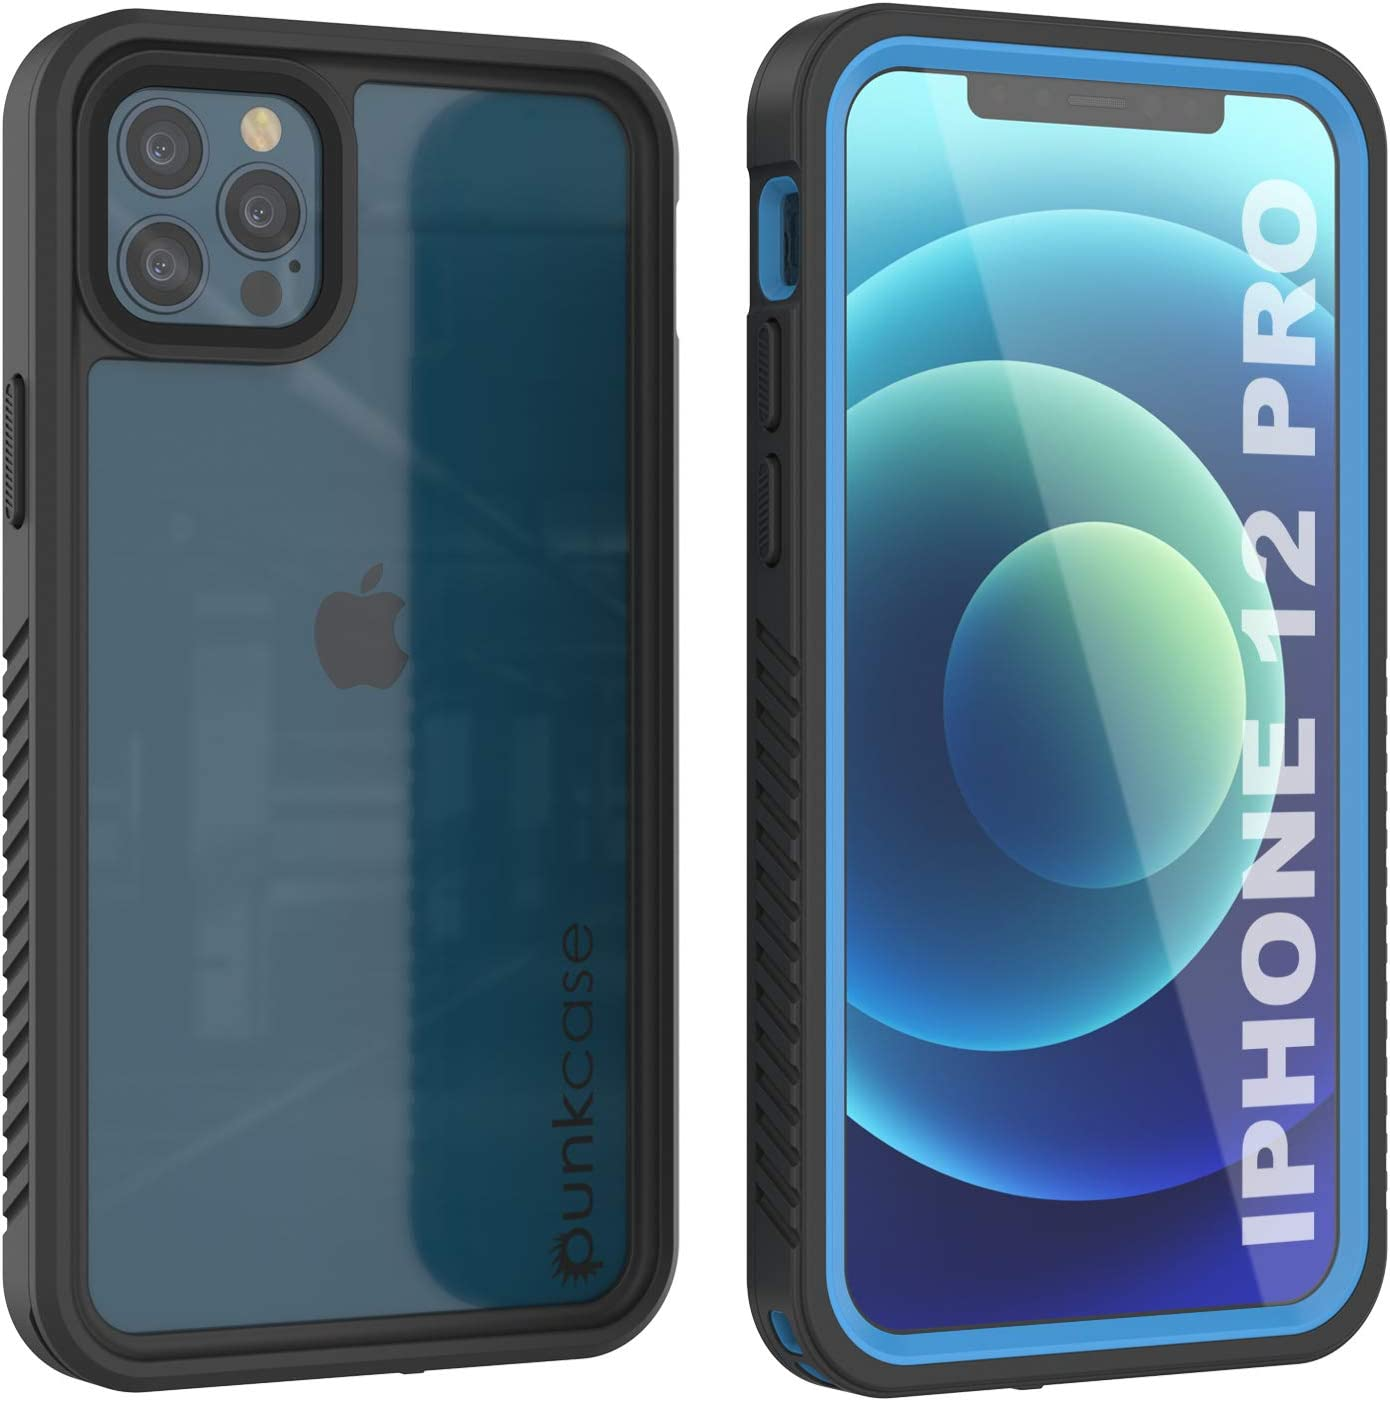 Punkcase iPhone 12 Pro Waterproof Case [Extreme Series] [Slim Fit] [IP68 Certified] [Shockproof] [Snowproof] Armor Cover W/Built in Screen Protector Compatible with Apple iPhone 12 Pro (6.1